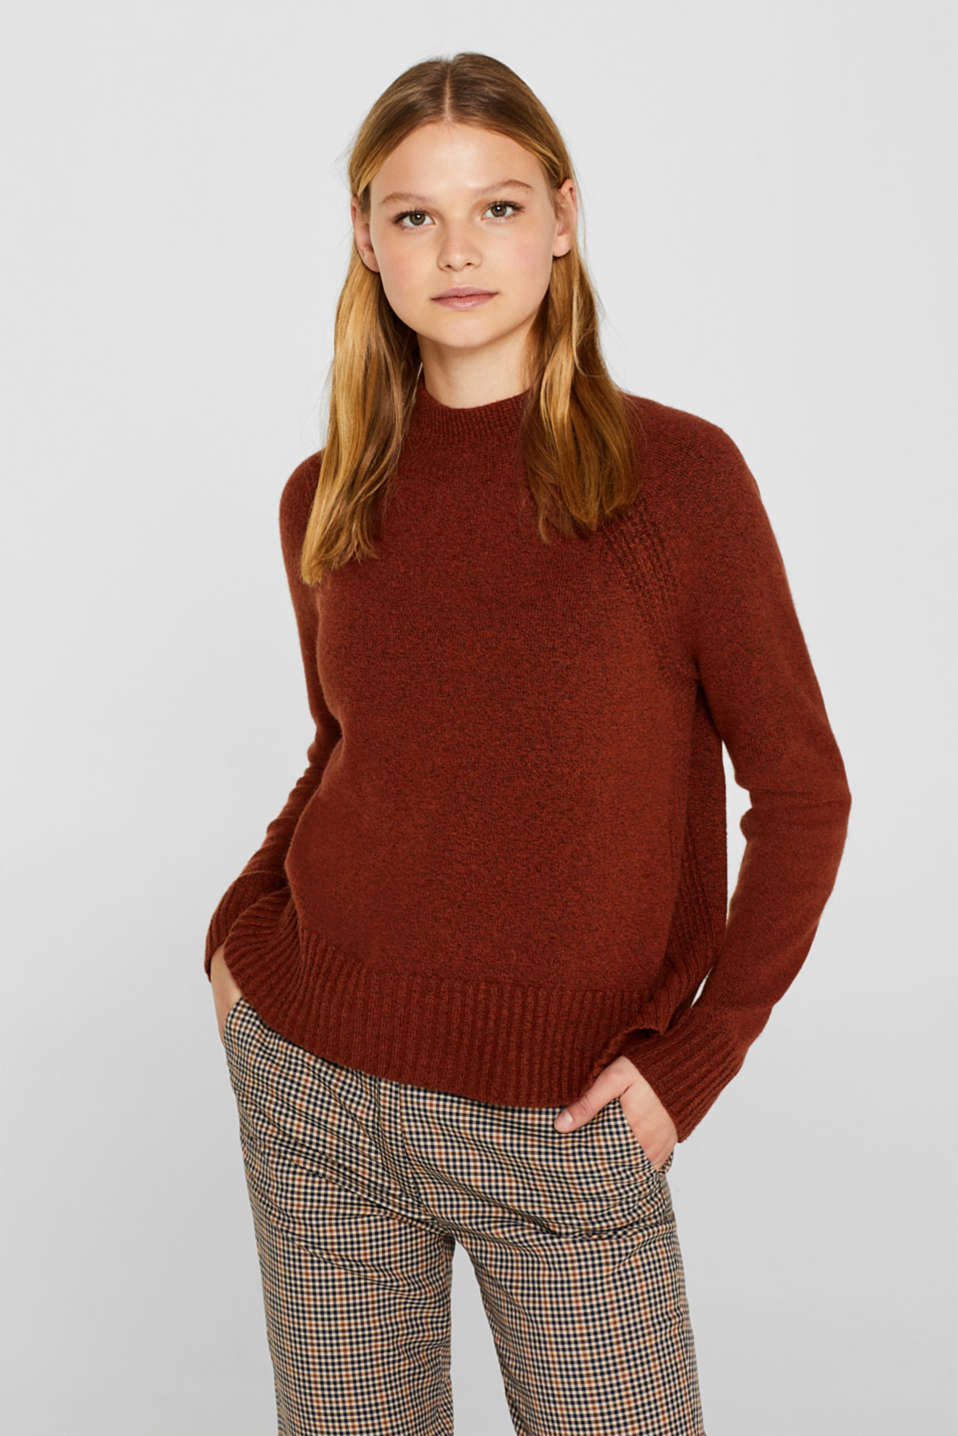 Wool blend: jumper with textured stripes